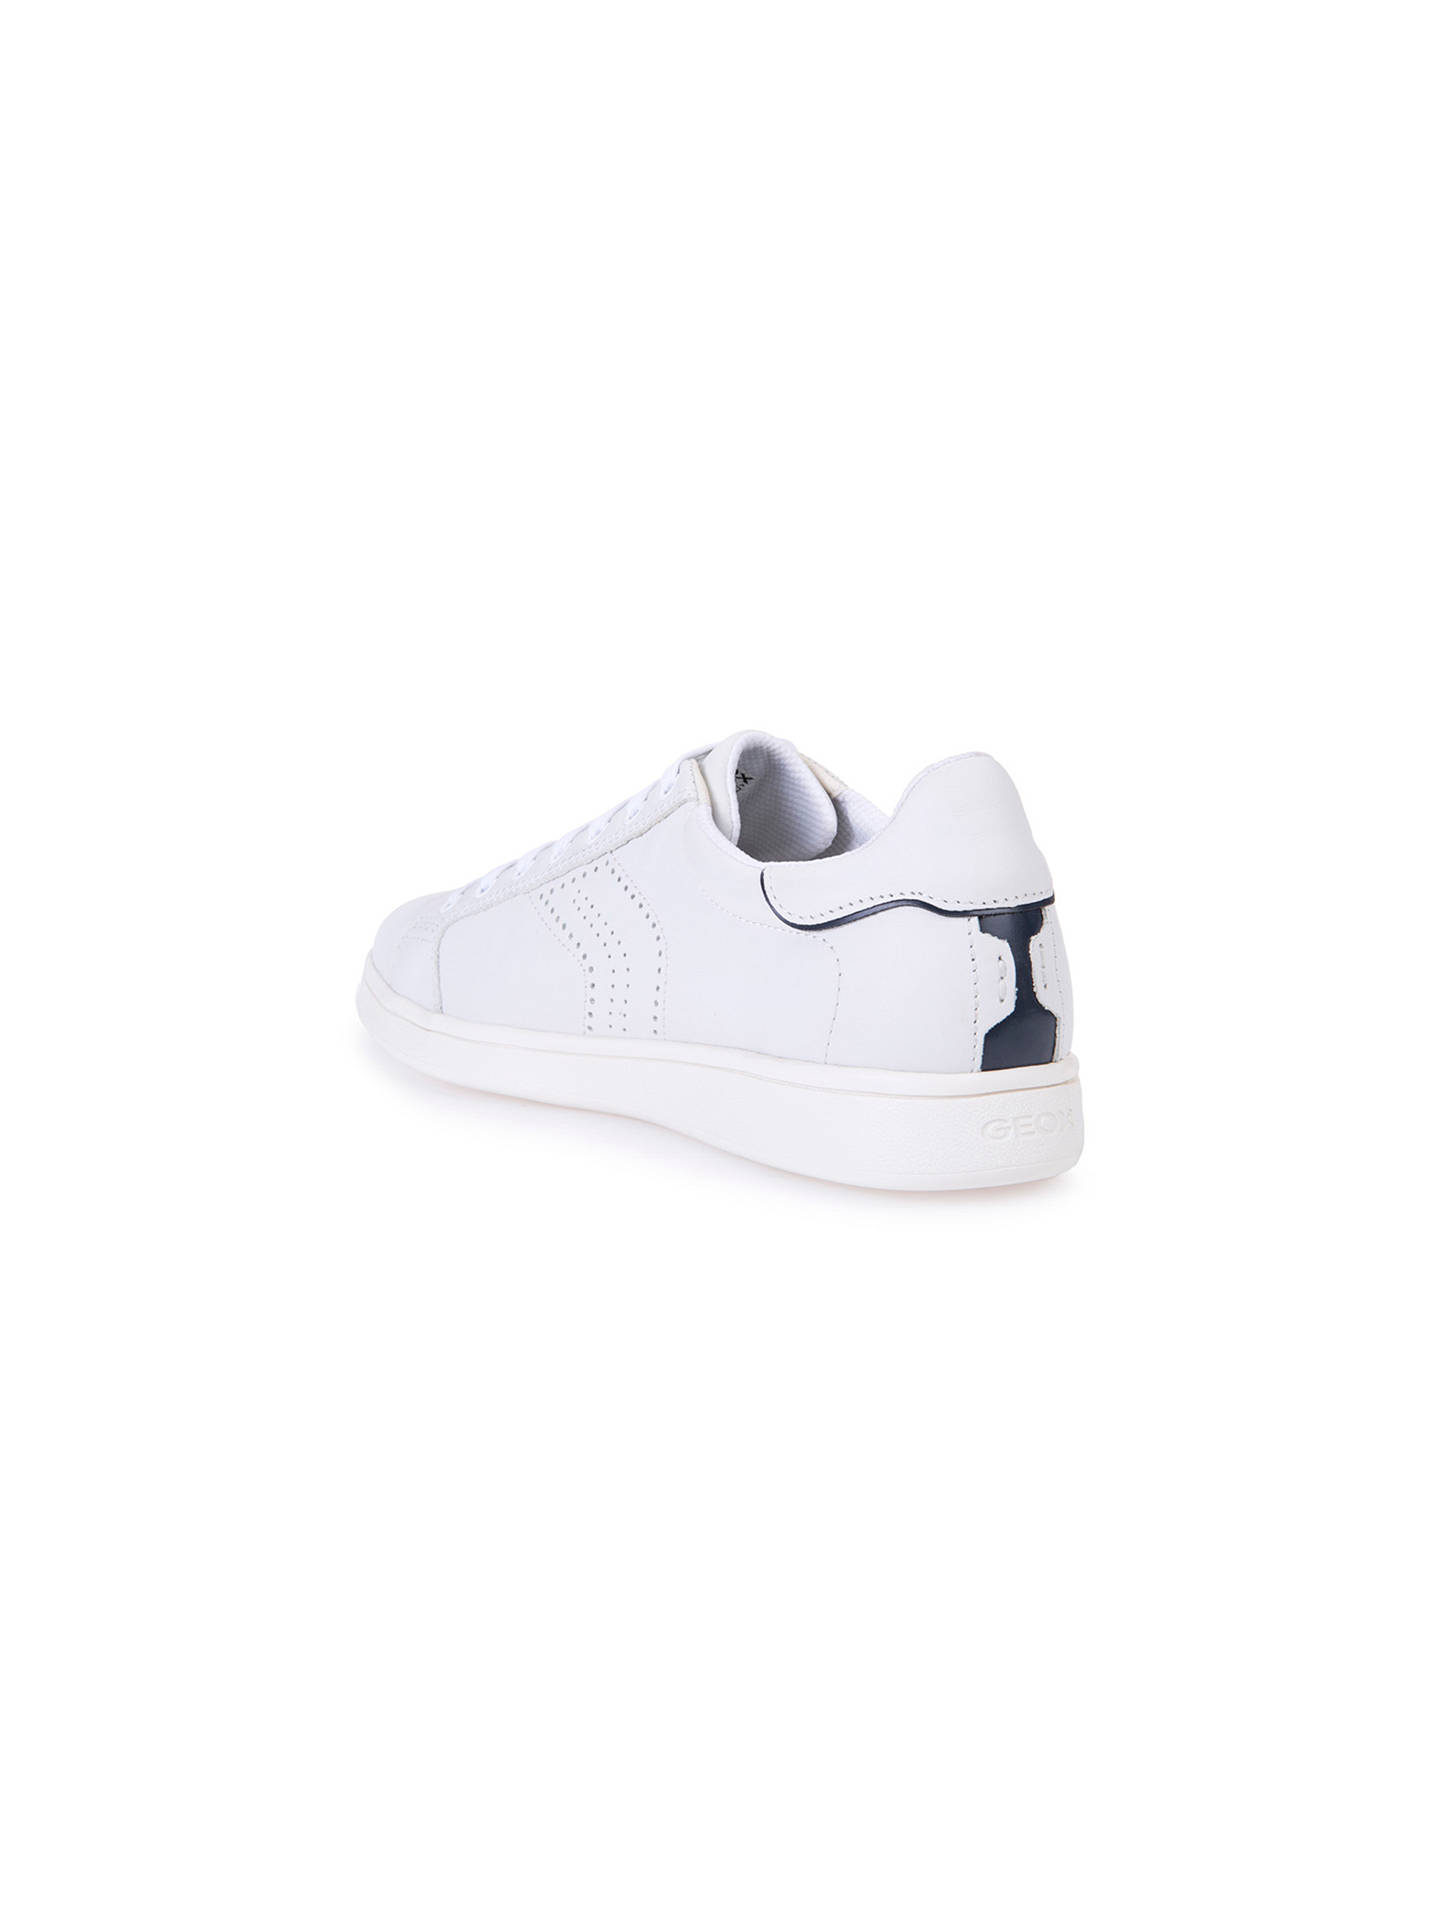 a65d5859d9 ... Buy Geox Warrens Trainers, White, White, 7 Online at johnlewis.com ...